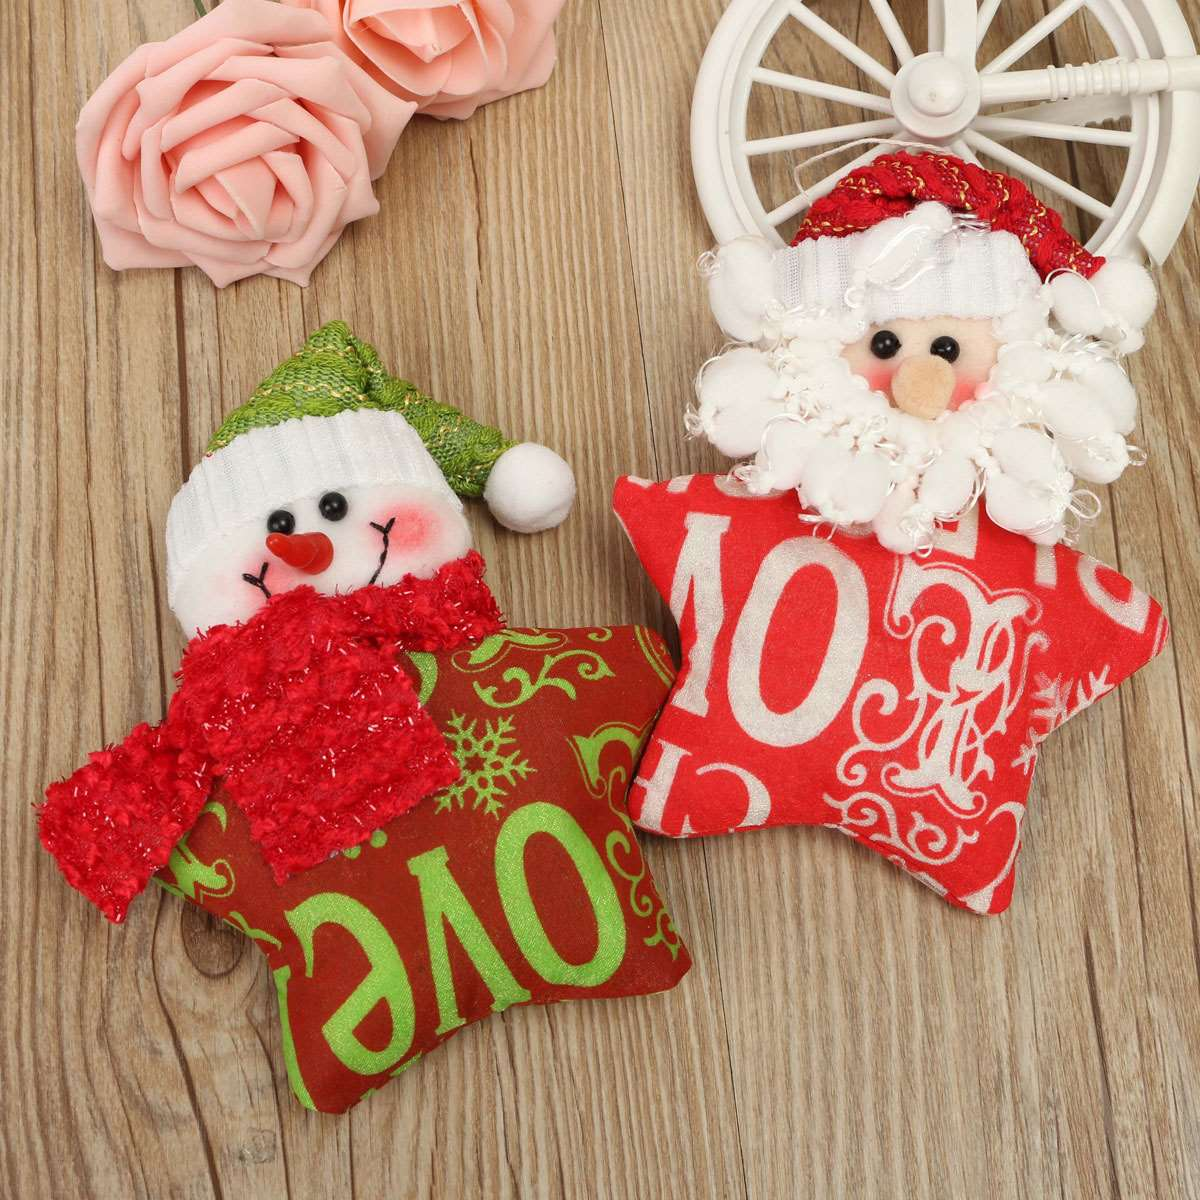 Christmas Xmas Tree Pendant Ornaments Snowman Santa Claus Pentagram Star Hanging Doll Christmas Home Decor Supplies